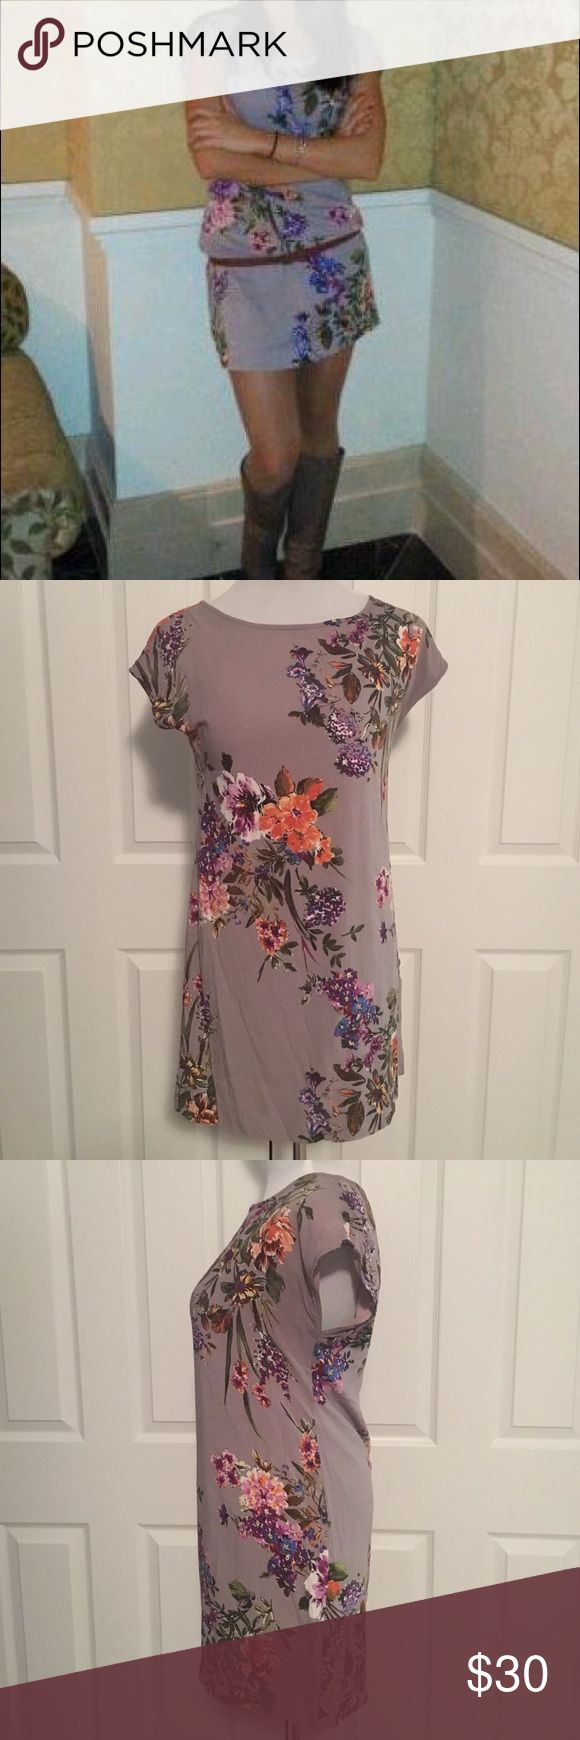 """Floral Shift Dress S Adorable purple Floral shift dress, size small from Stradivarius in Spain. Absolutely love this dress but it's a little too small now :(. Length is about 22"""". Great for the summer or dress it up with boots, tights and a cardigan for the fall/winter. Belt in picture is NOT included. Boots in picture also for sale. Dresses Mini"""